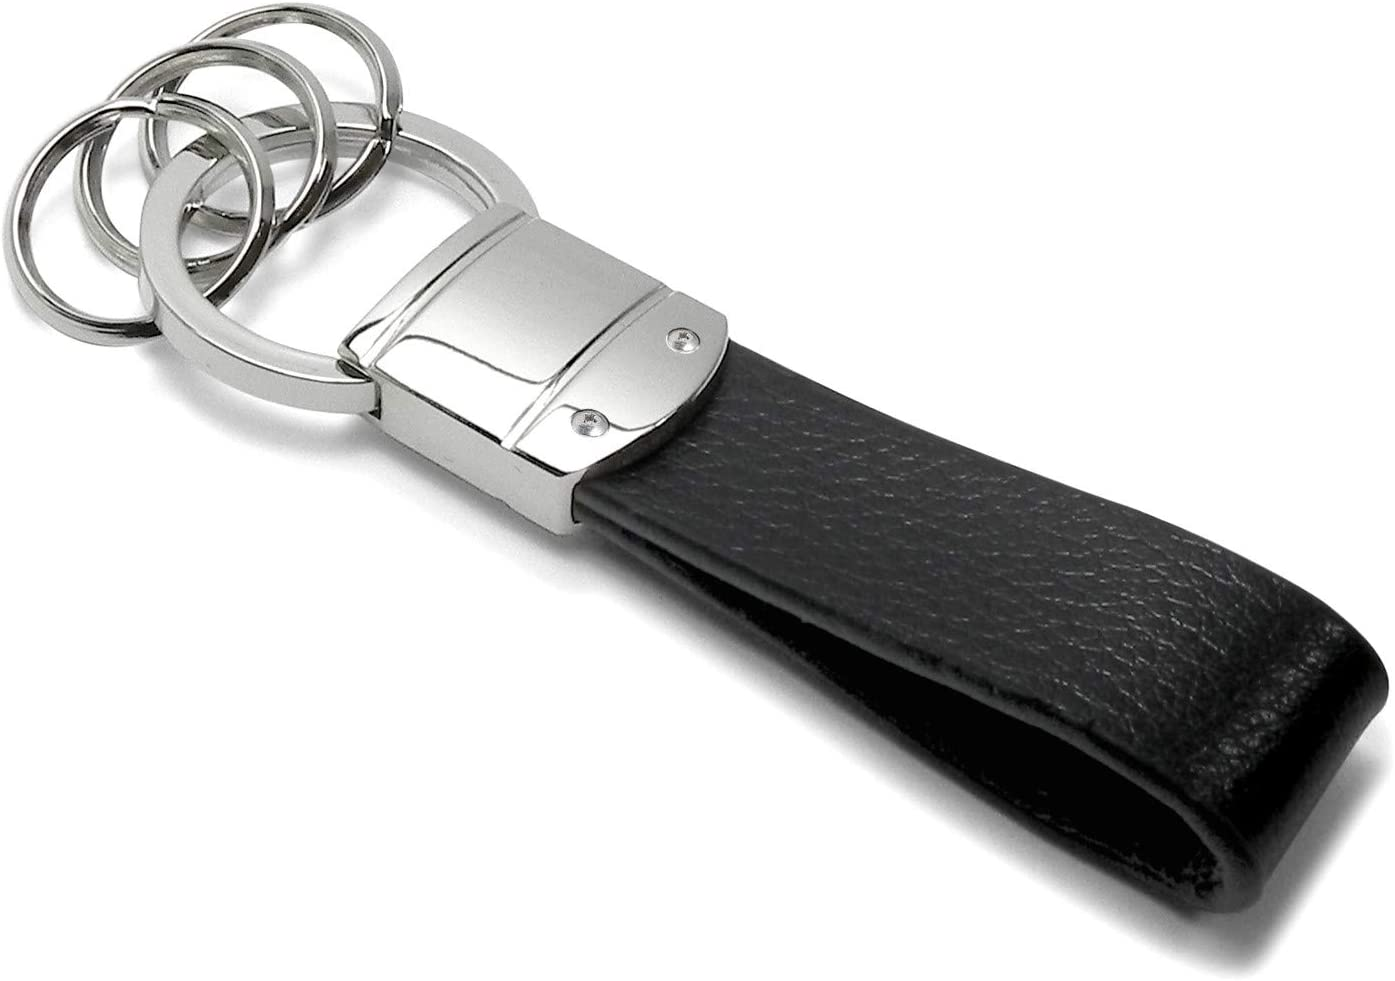 Dodge Challenger R//T Classic Genuine Black Leather Strap Loop Key Chain iPick Image for